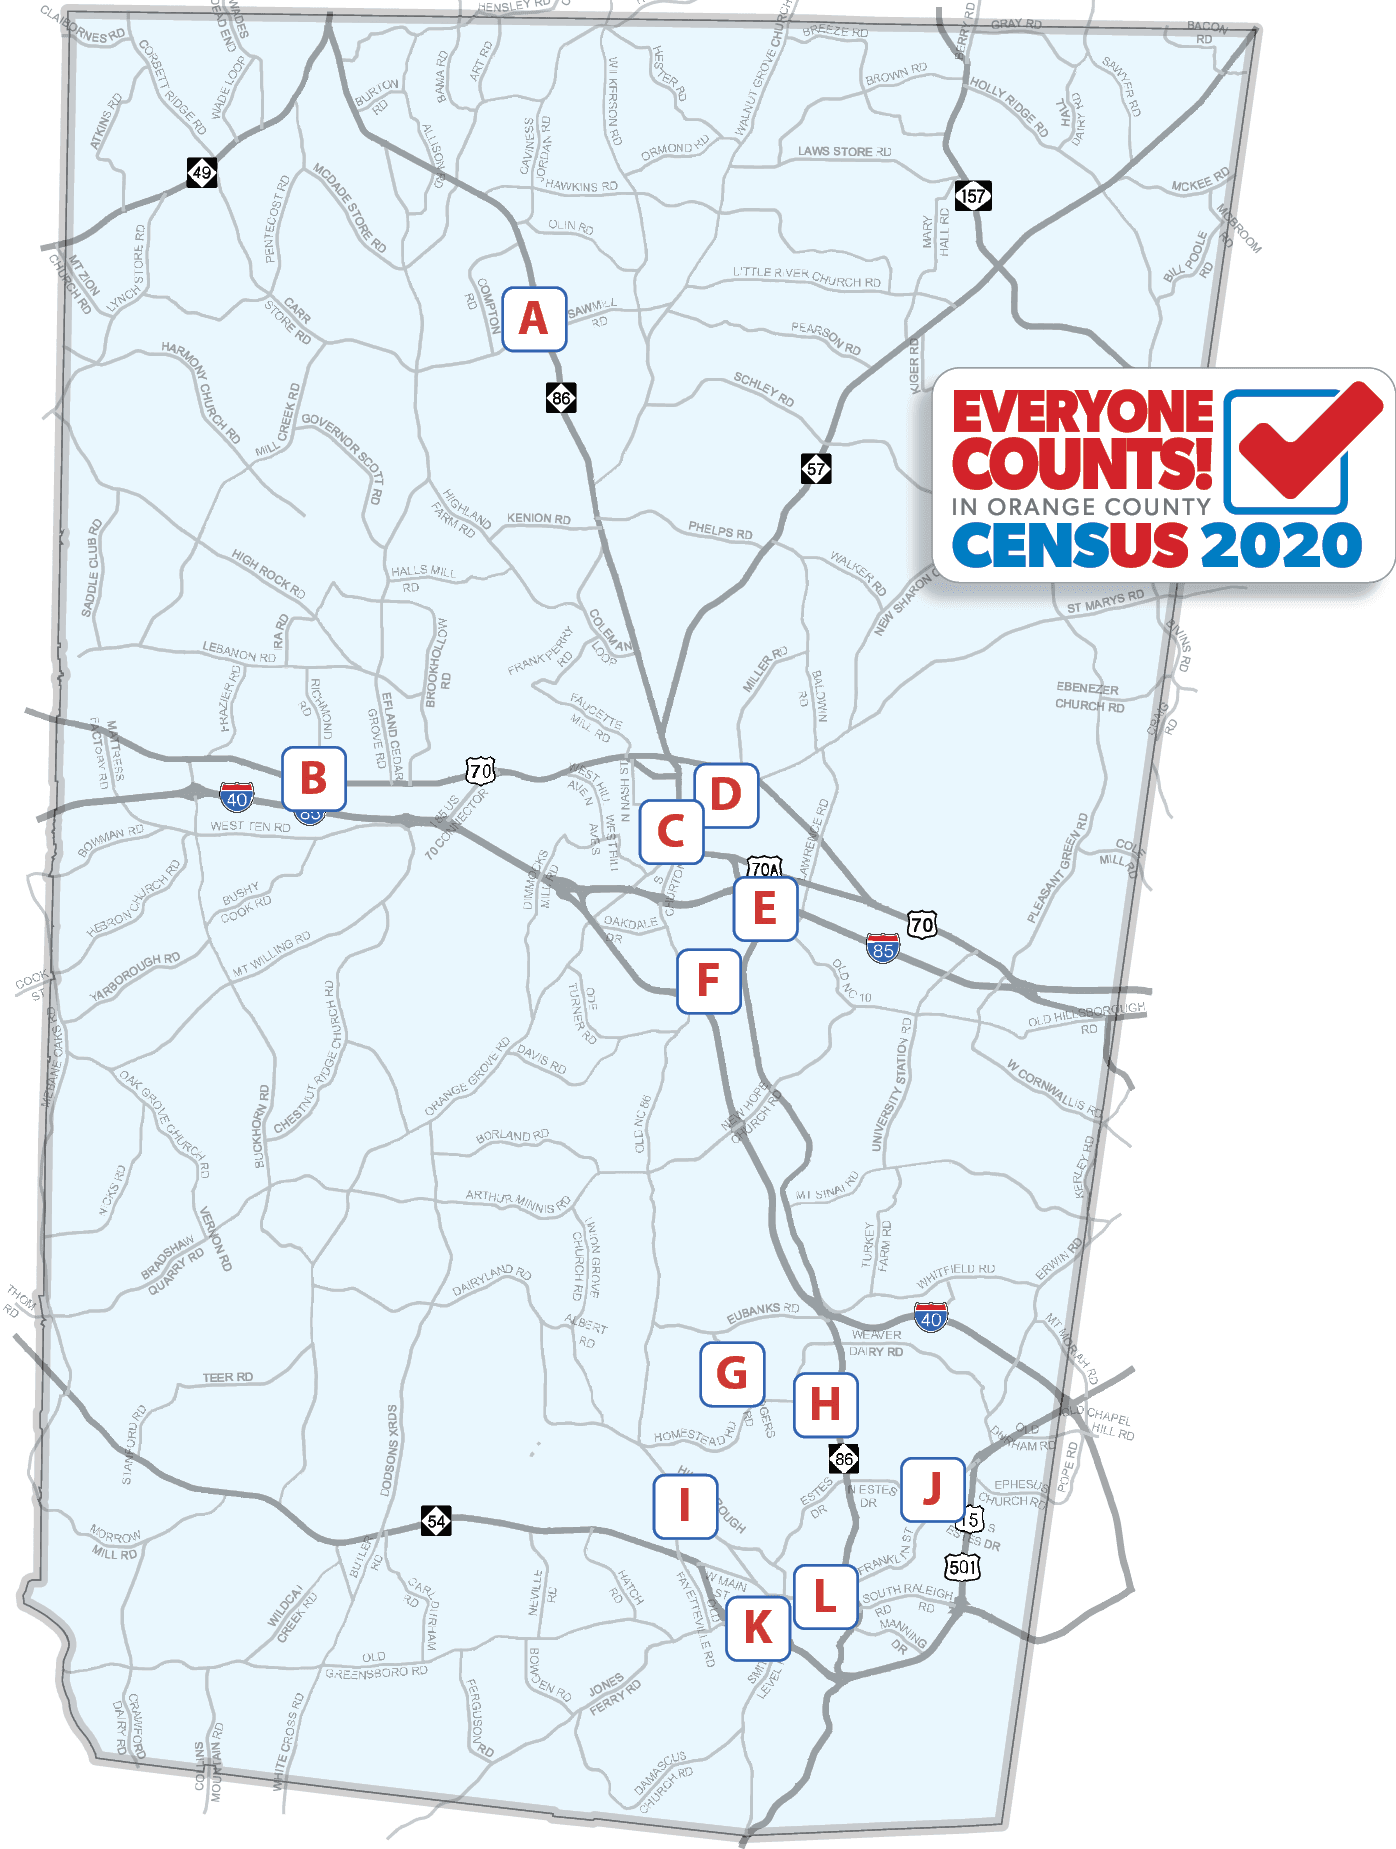 Be counted sites